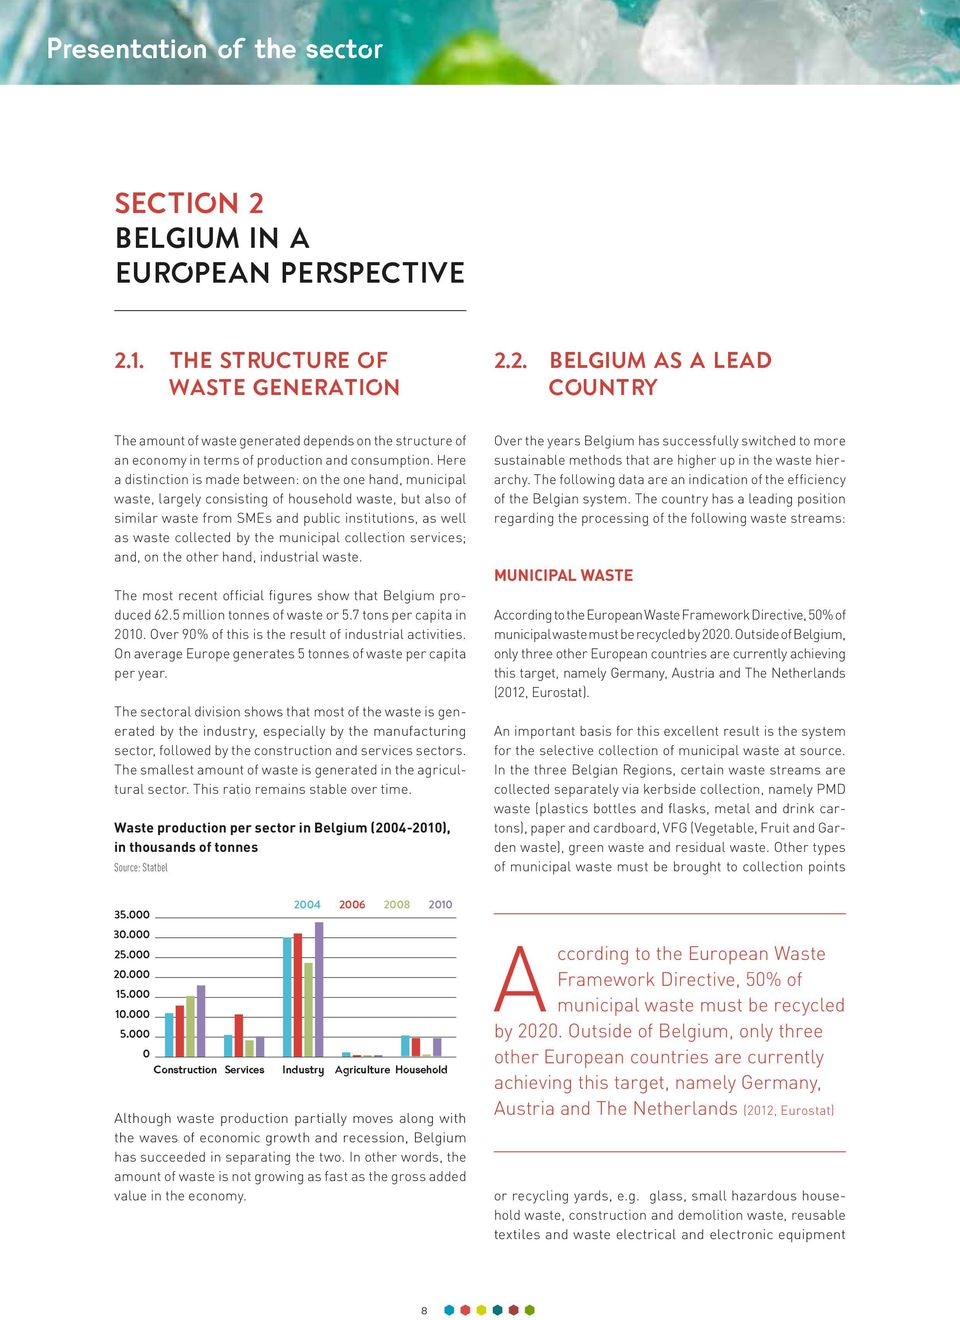 the municipal collection services; and, on the other hand, industrial waste. The most recent official figures show that Belgium produced 62.5 million tonnes of waste or 5.7 tons per capita in 2010.